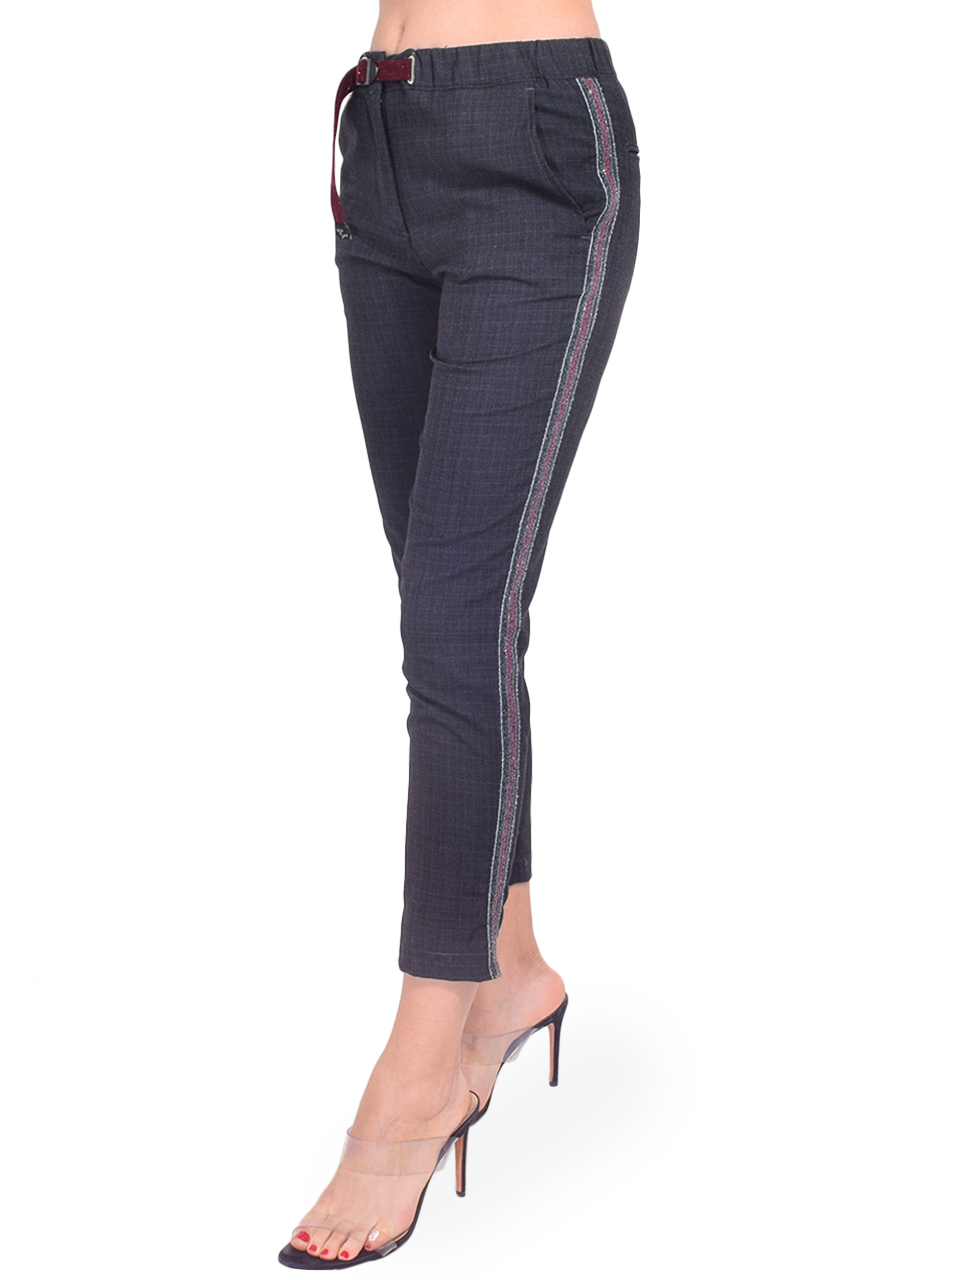 WHITE SAND Angelina Pant in Grey Plaid Side View